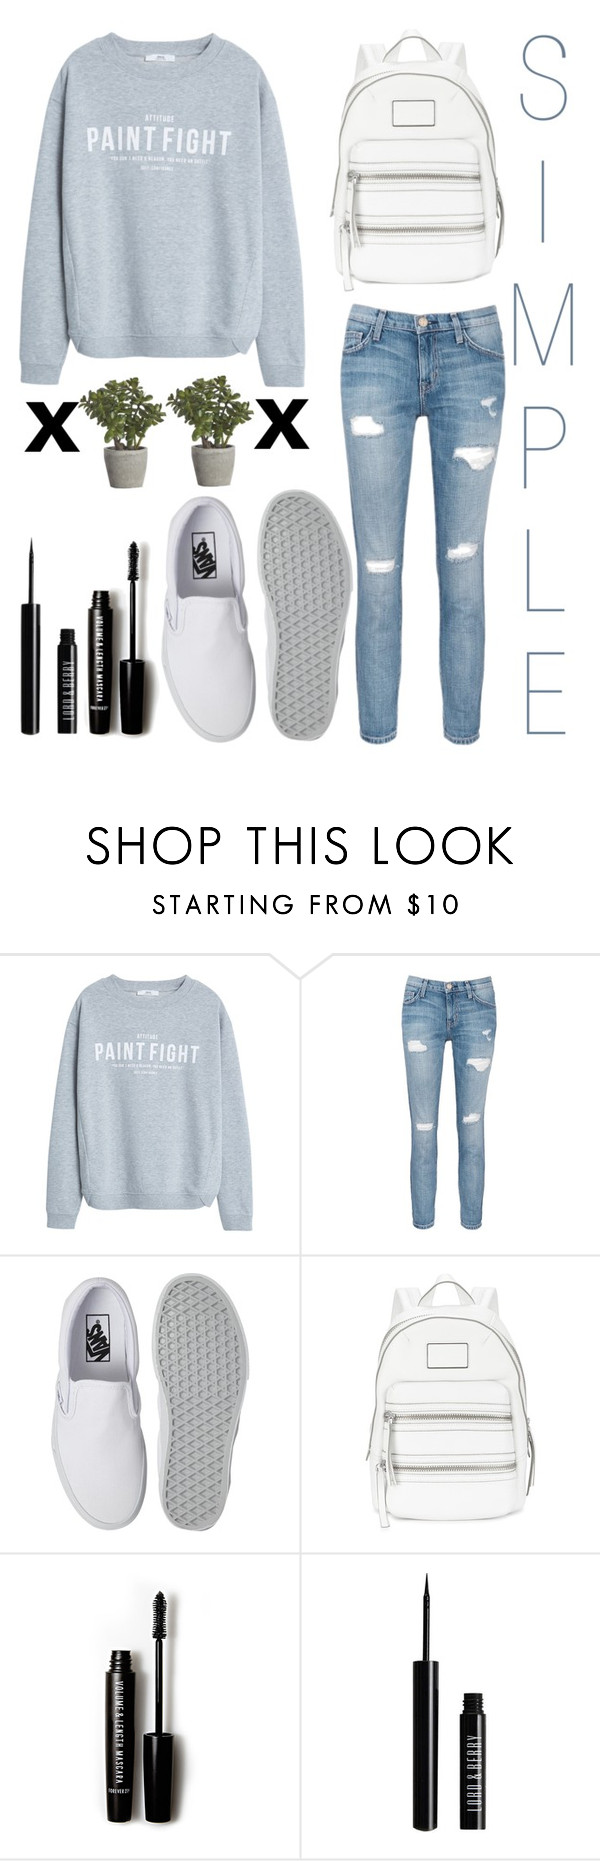 """""""19#"""" by julietabazan ❤ liked on Polyvore featuring MANGO, Current/Elliott, Vans, Marc by Marc Jacobs, Forever 21, Lord & Berry and Crate and Barrel"""